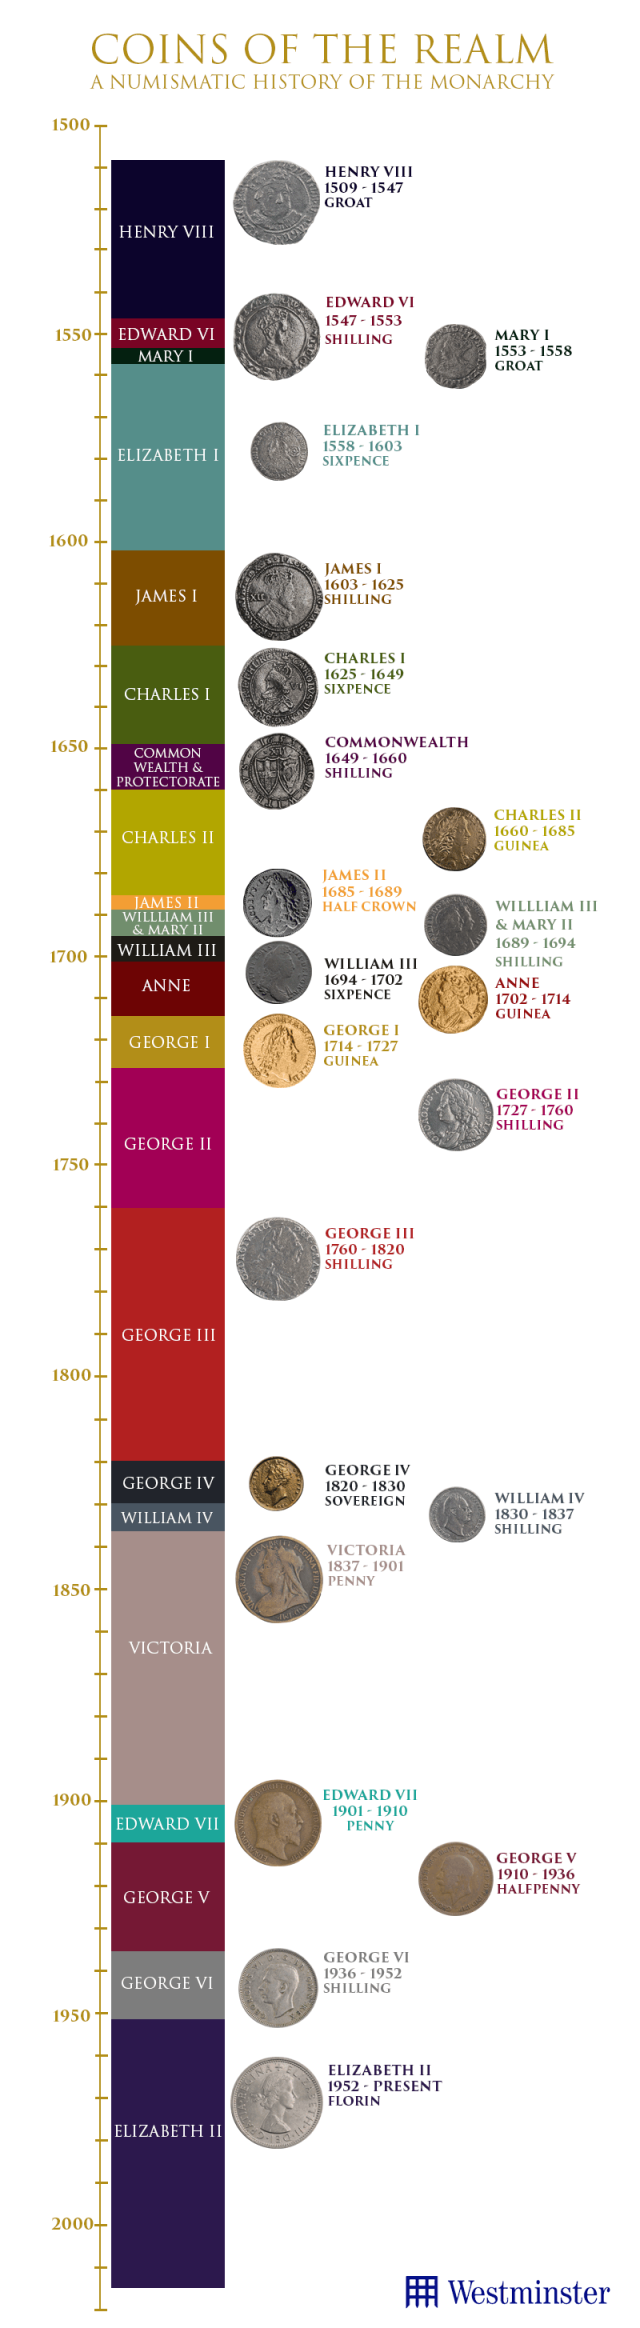 new coins of the realm version 24 - 500 Years of Kings and Queens... on coins!